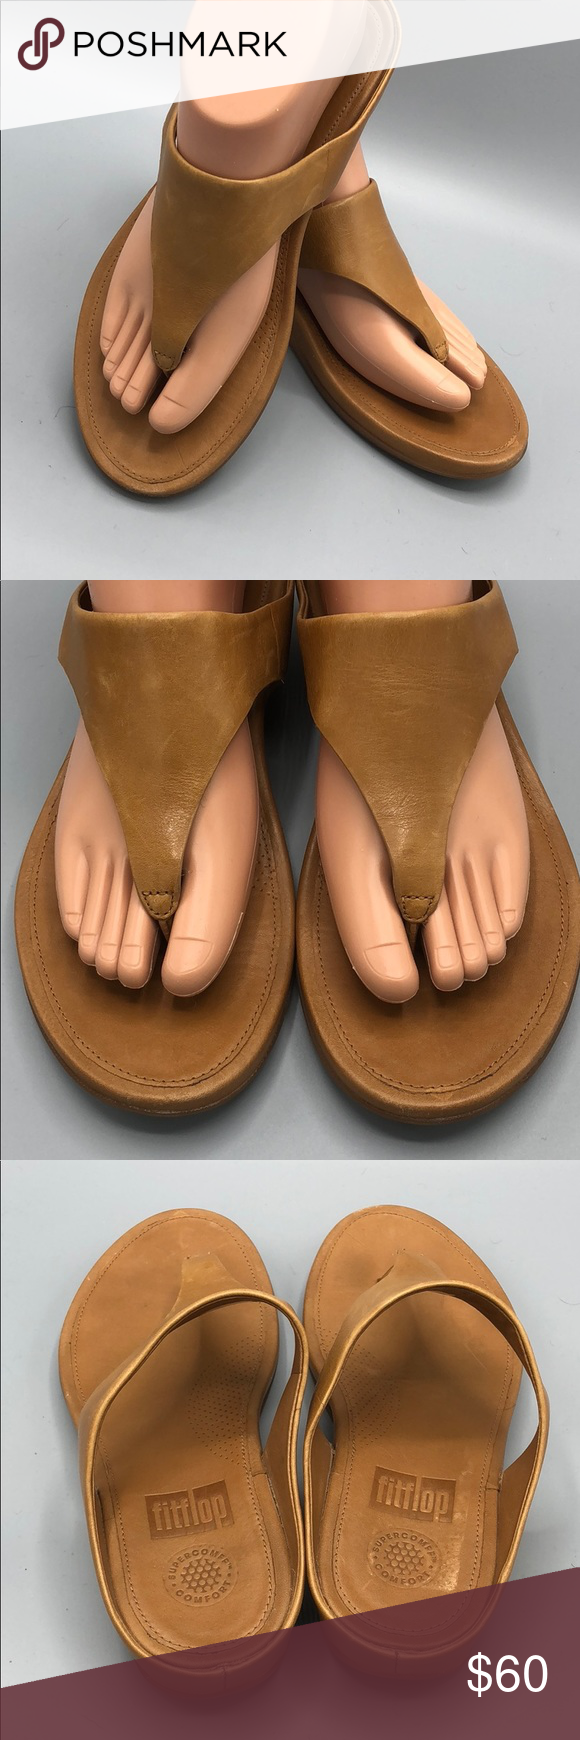 f1f427153cd8ec FitFlop Banda Tan Leather Thong Sandal Size 7 NICE Near new! This is the  crazy